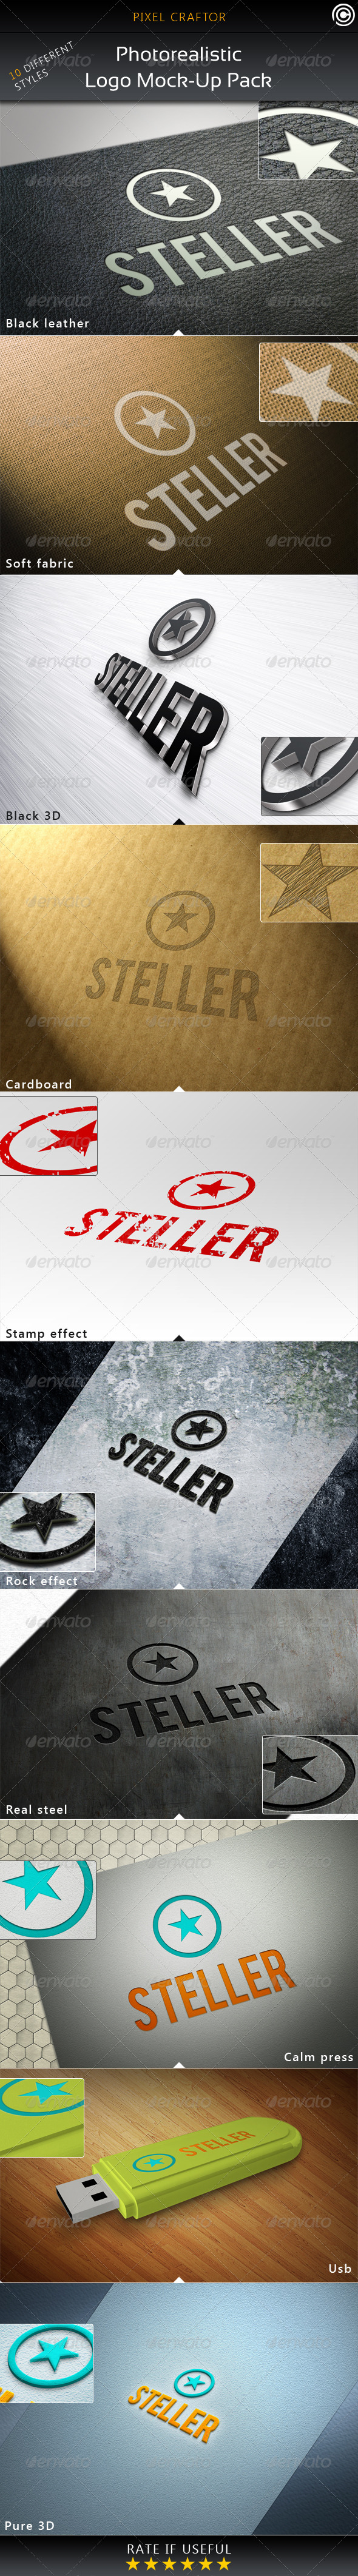 GraphicRiver 10 Photorealistic Logo Mock-Ups 4872361